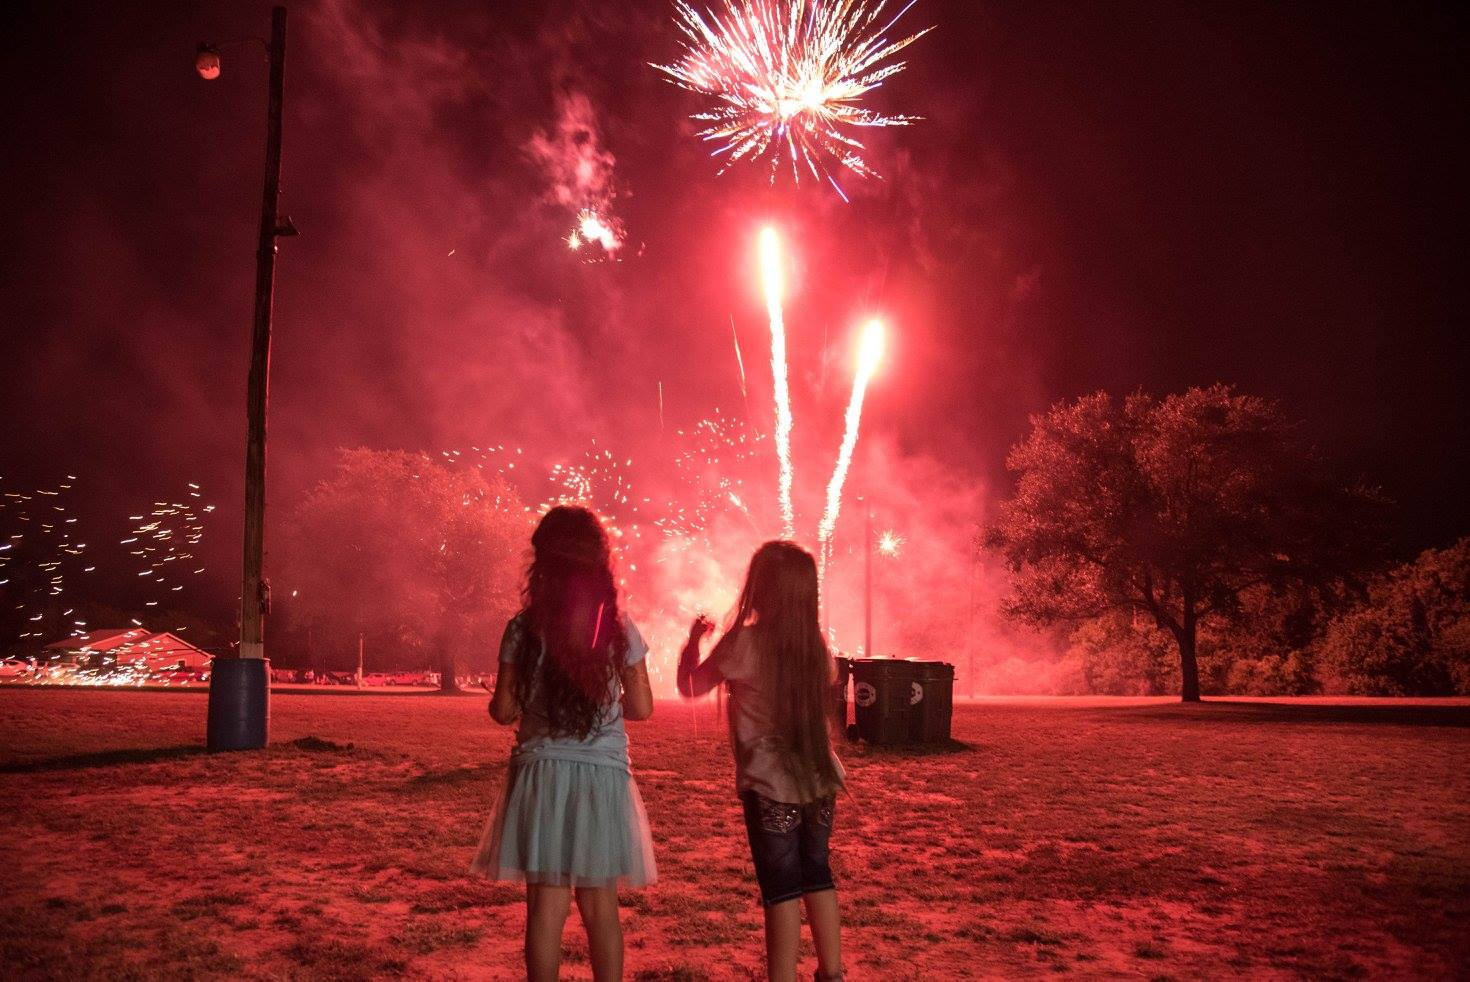 Event 2 Fireworks With Girls Silhouette